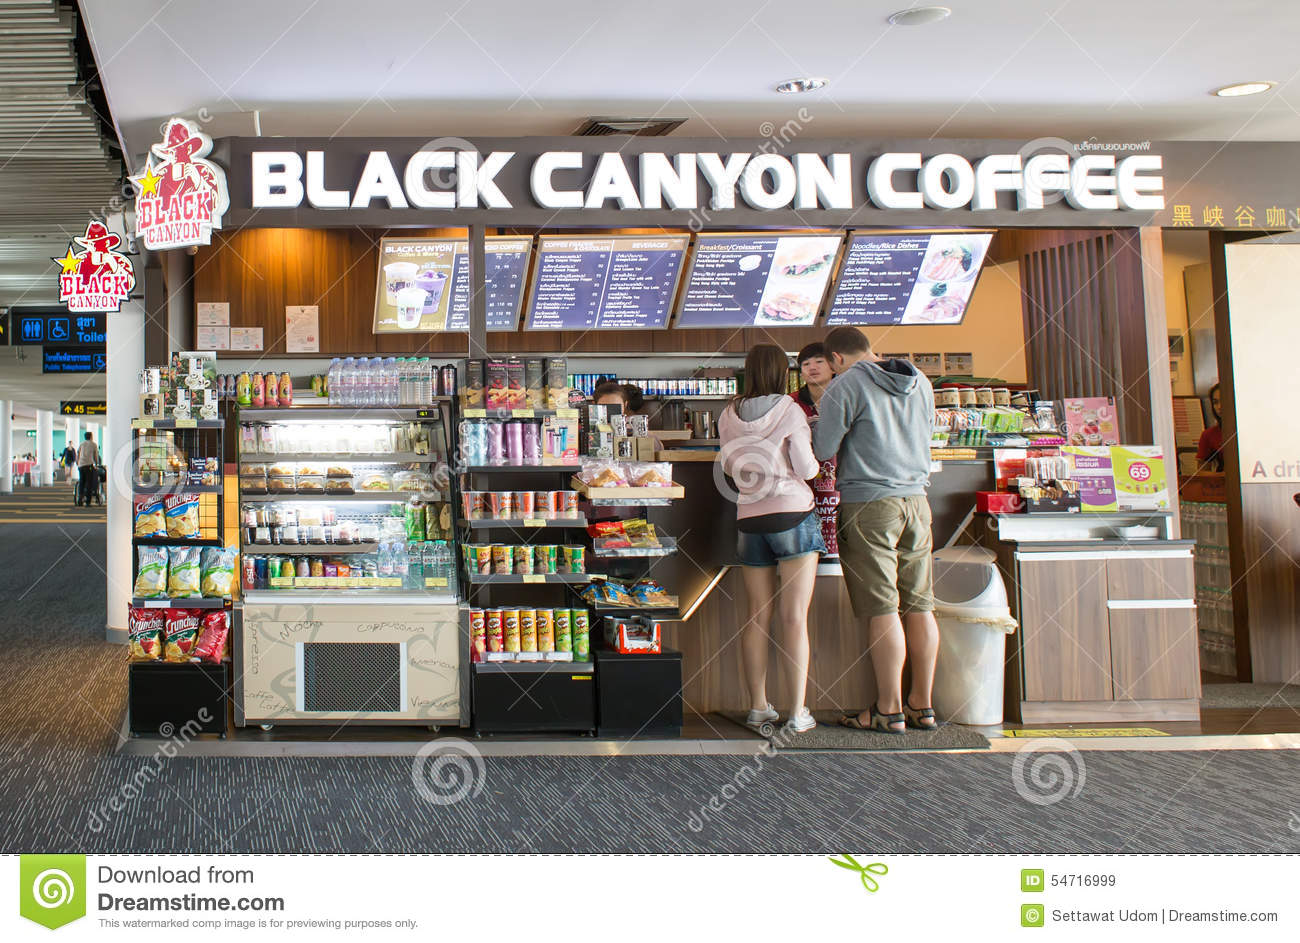 Black Canyon Coffee Bangkok Locations